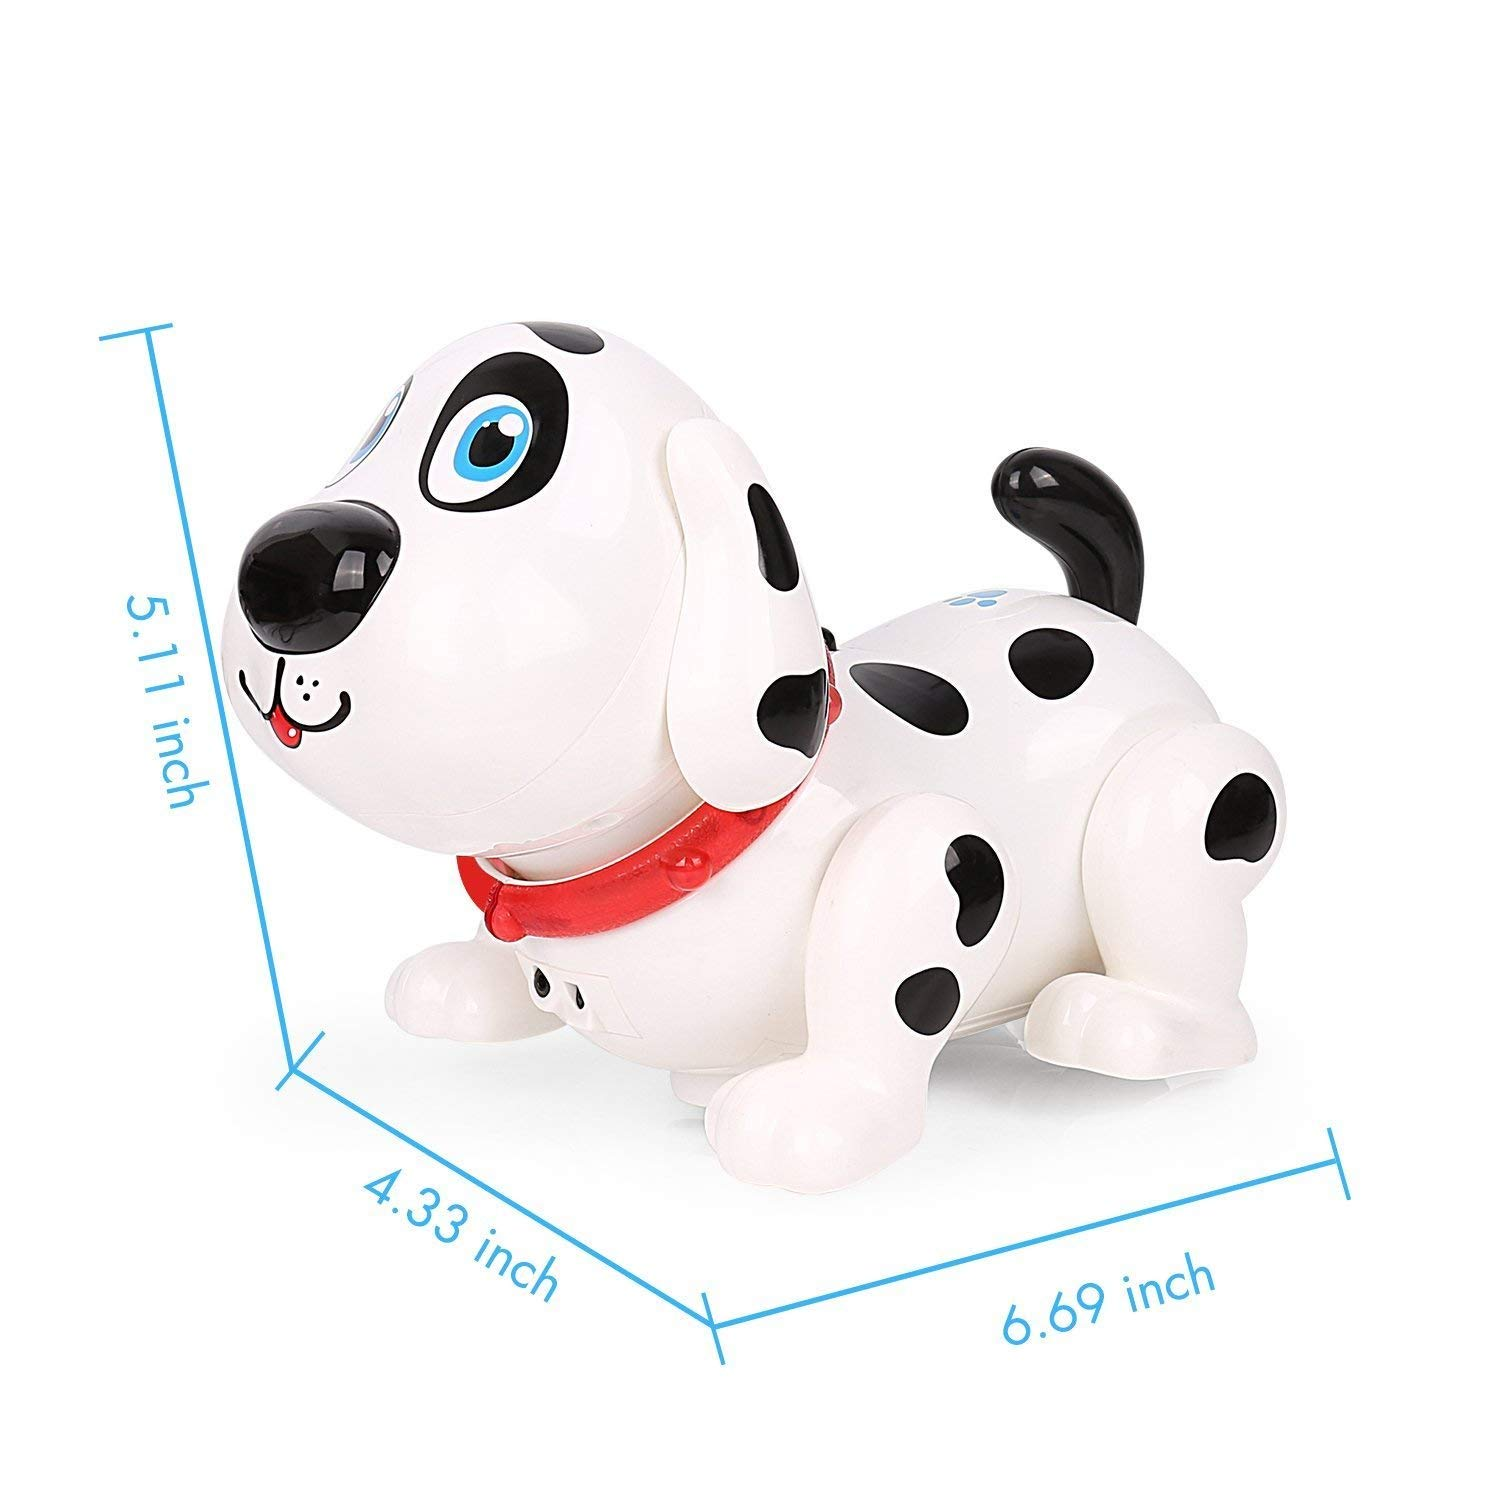 Electronic Dog,Interactive Puppy, Touch with Chasing, Walking, Dancing, Music, Interactive and Induction Toys for Boys or Girls Birthday Gifts by MIGO (Image #2)